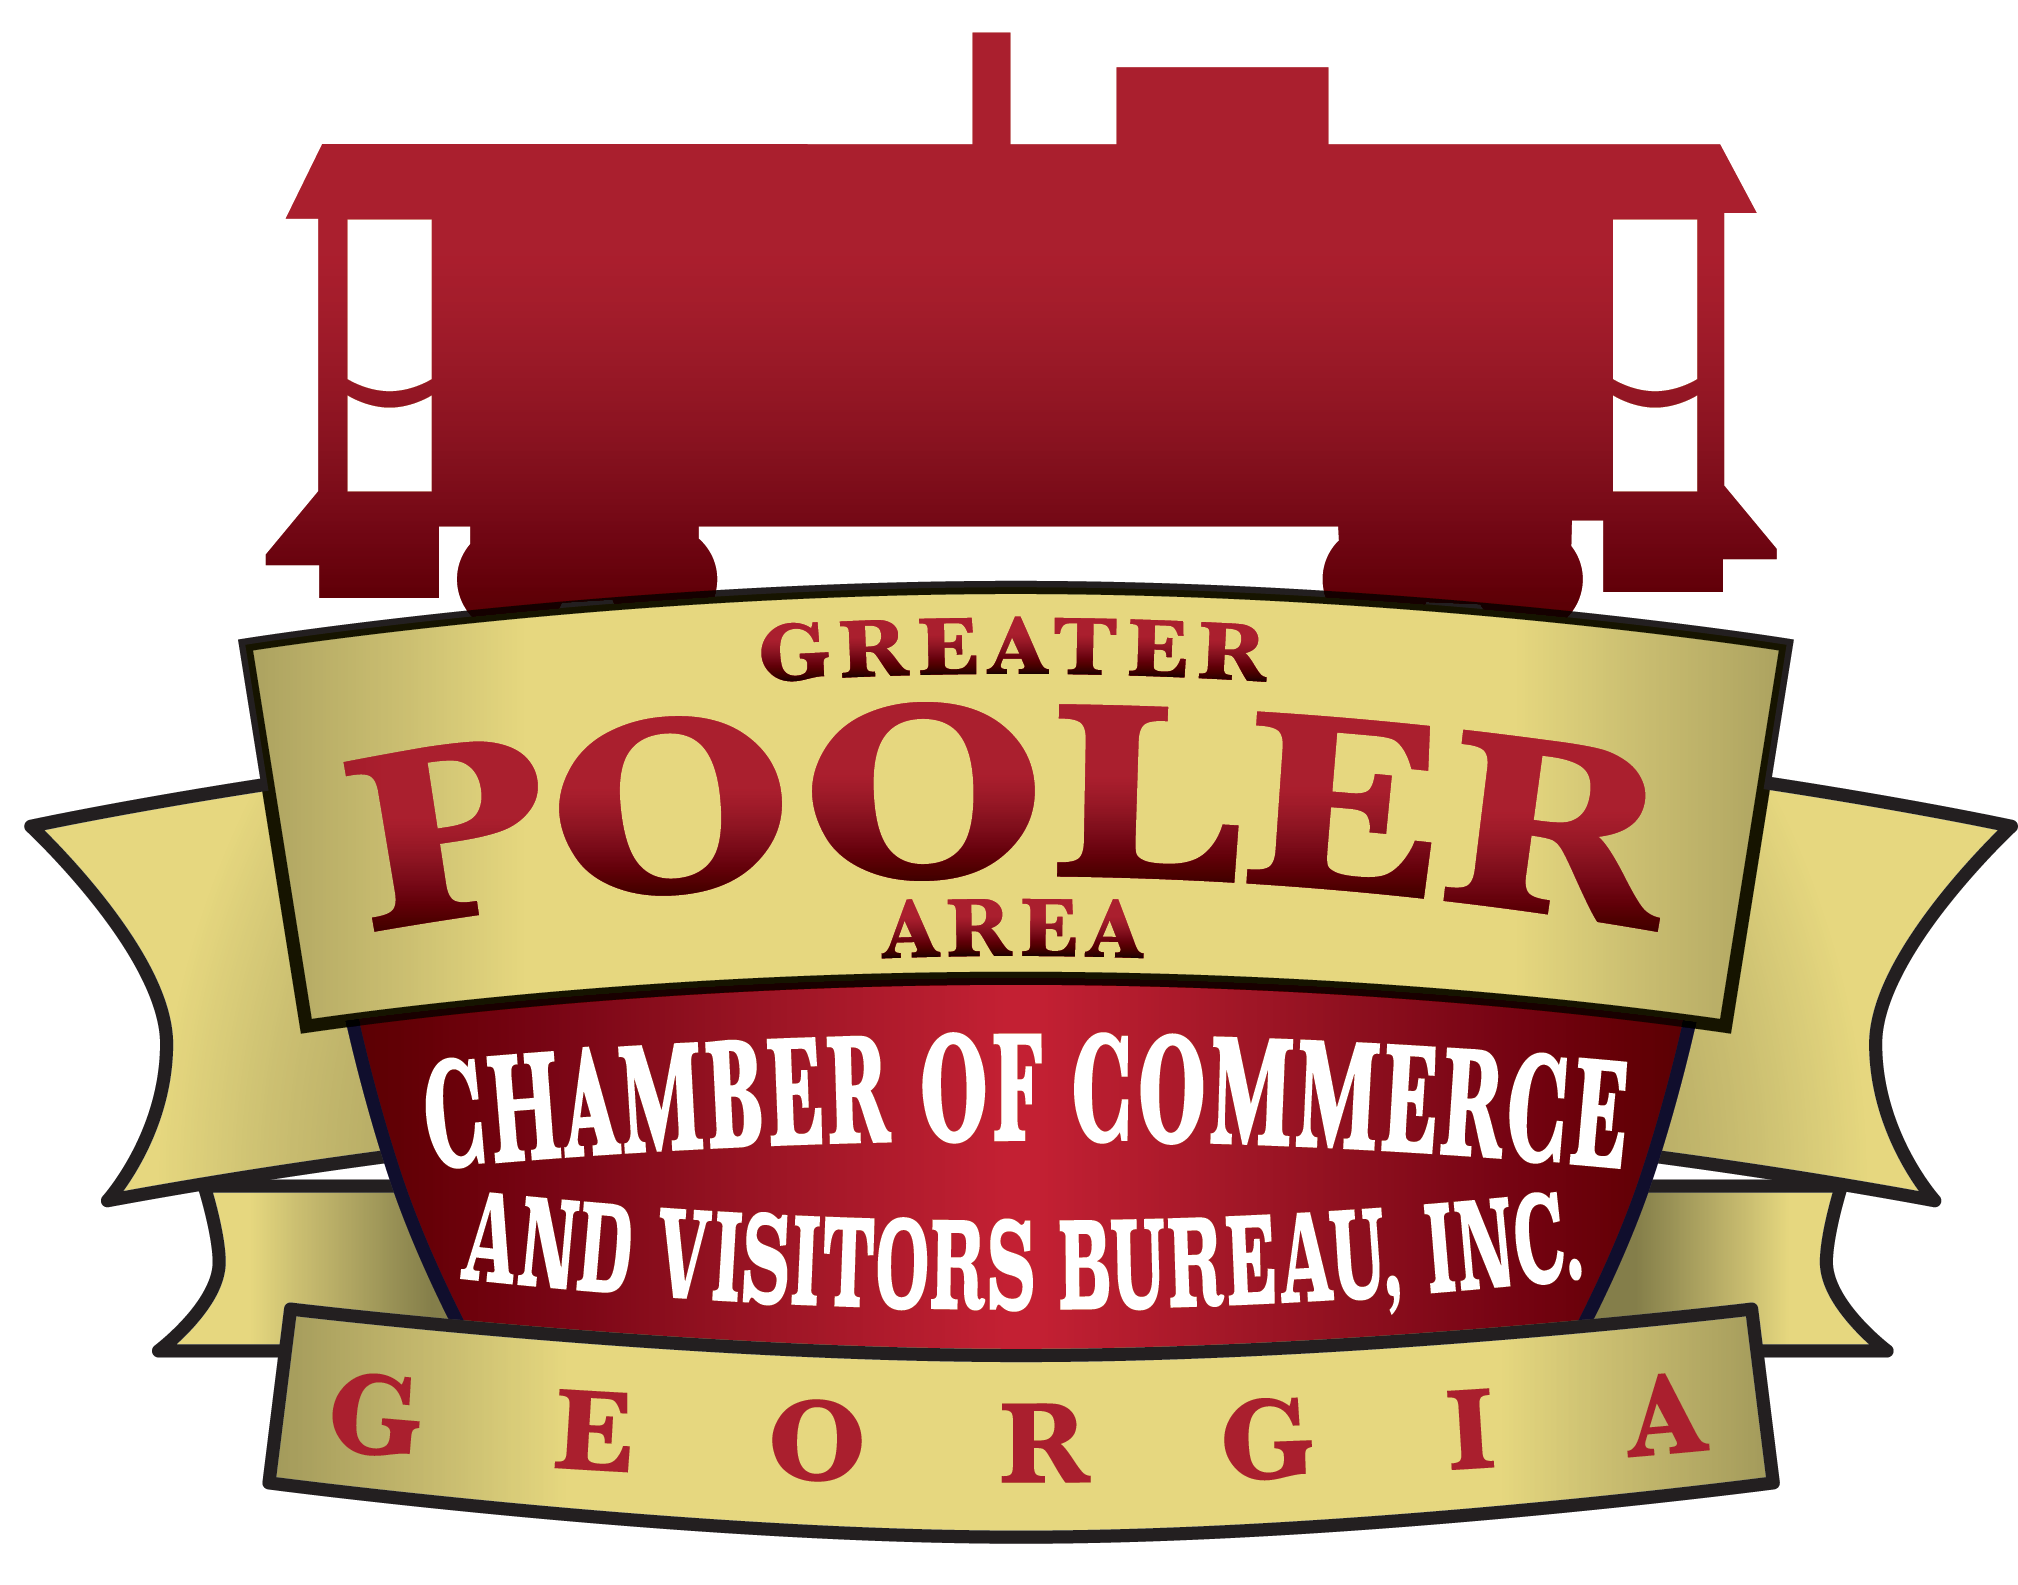 Pooler Chamber of Commerce